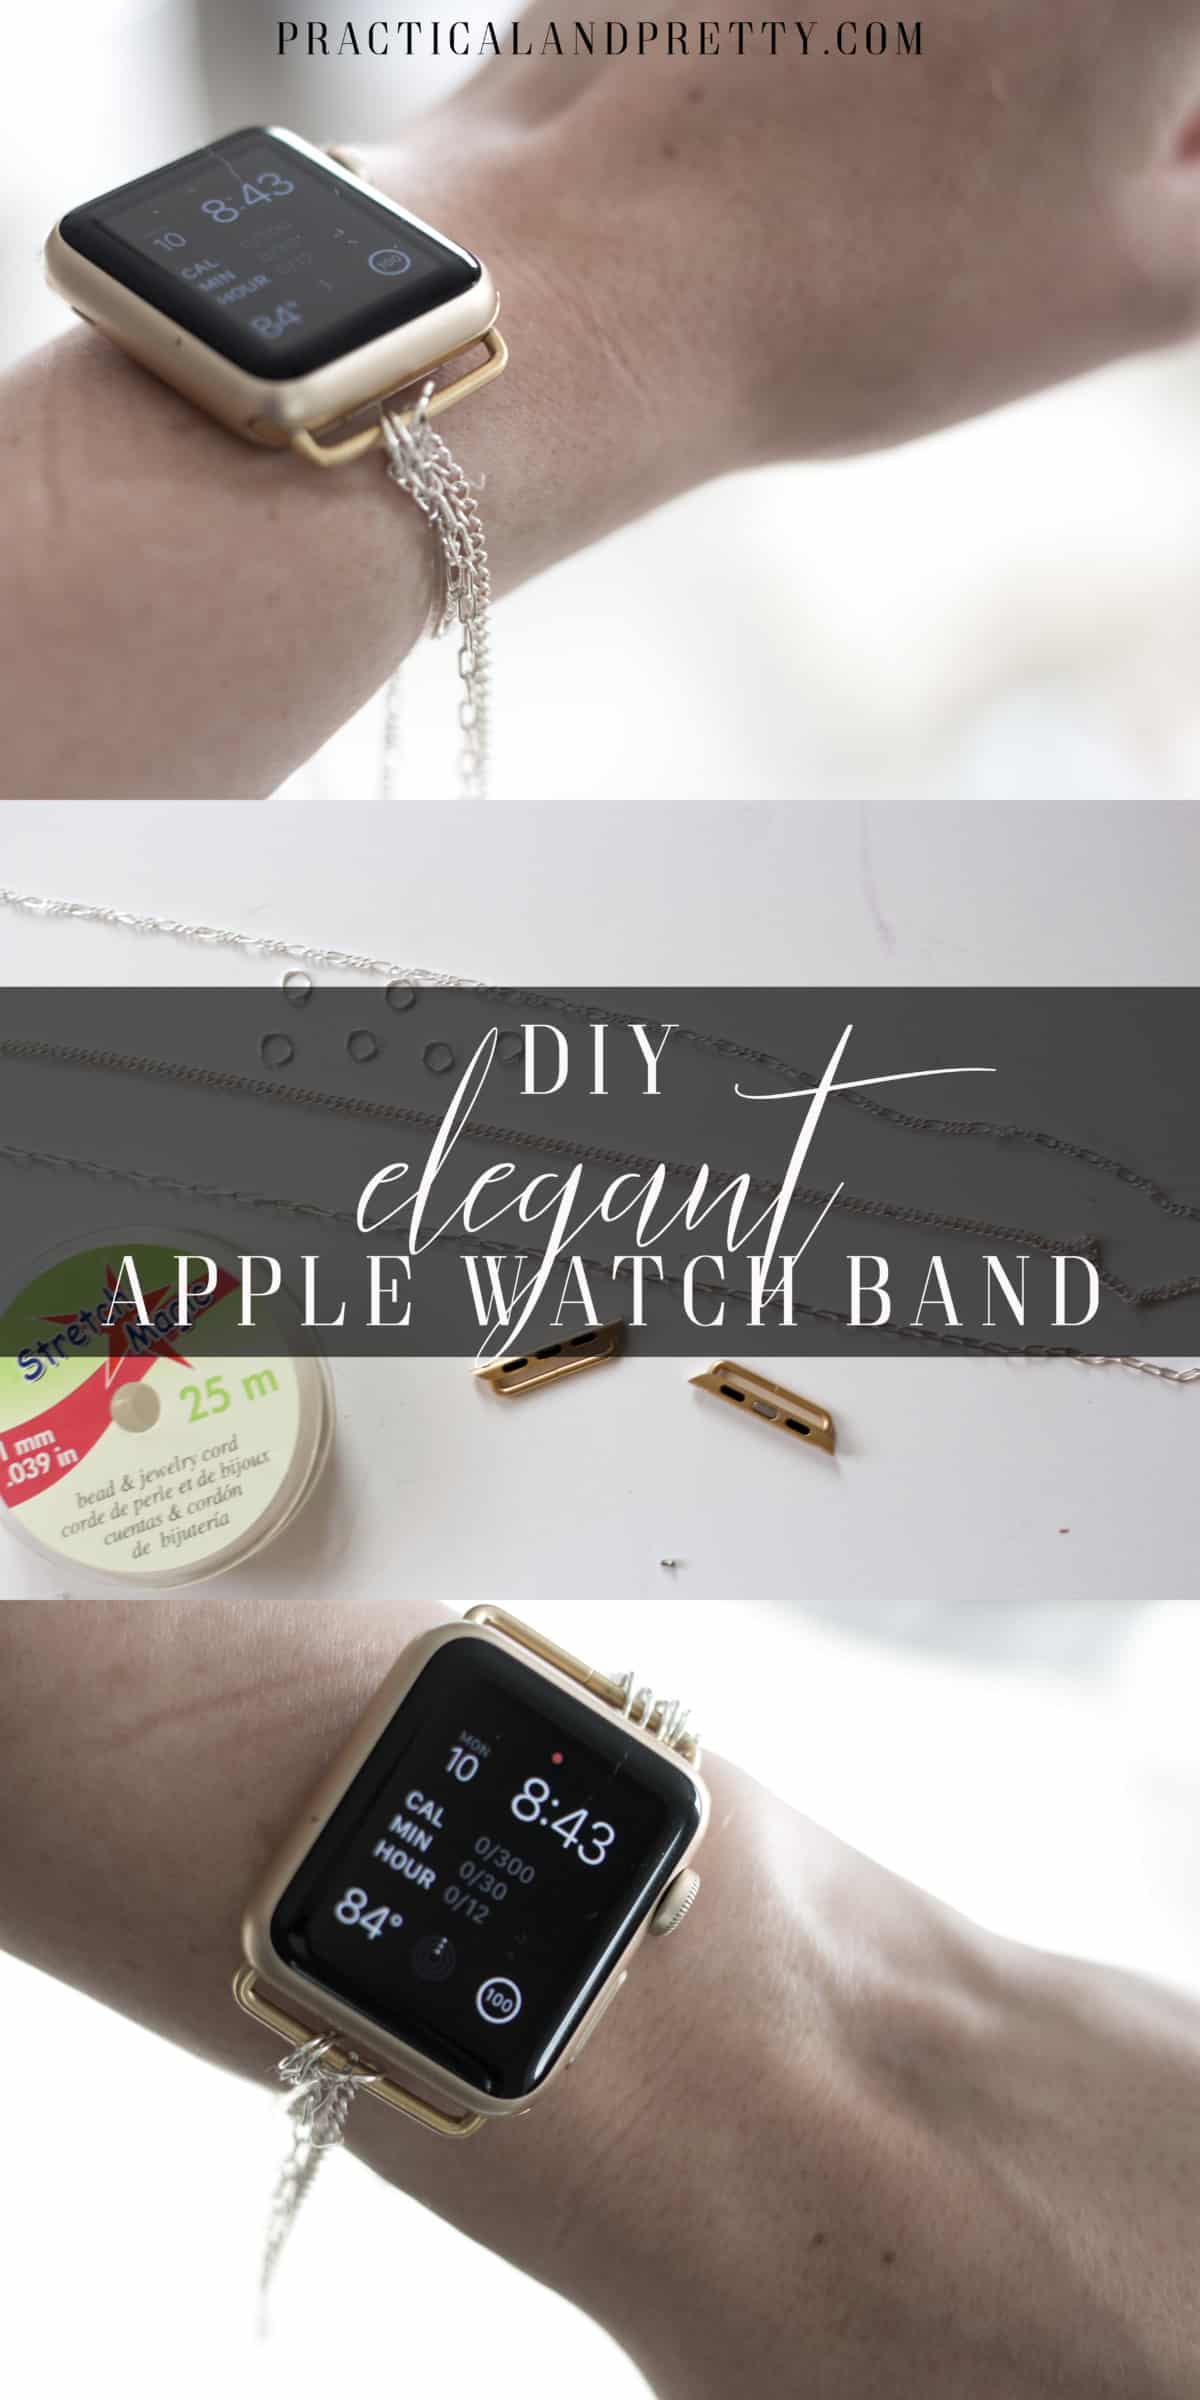 DIY Apple Watch Band - Practical and Pretty